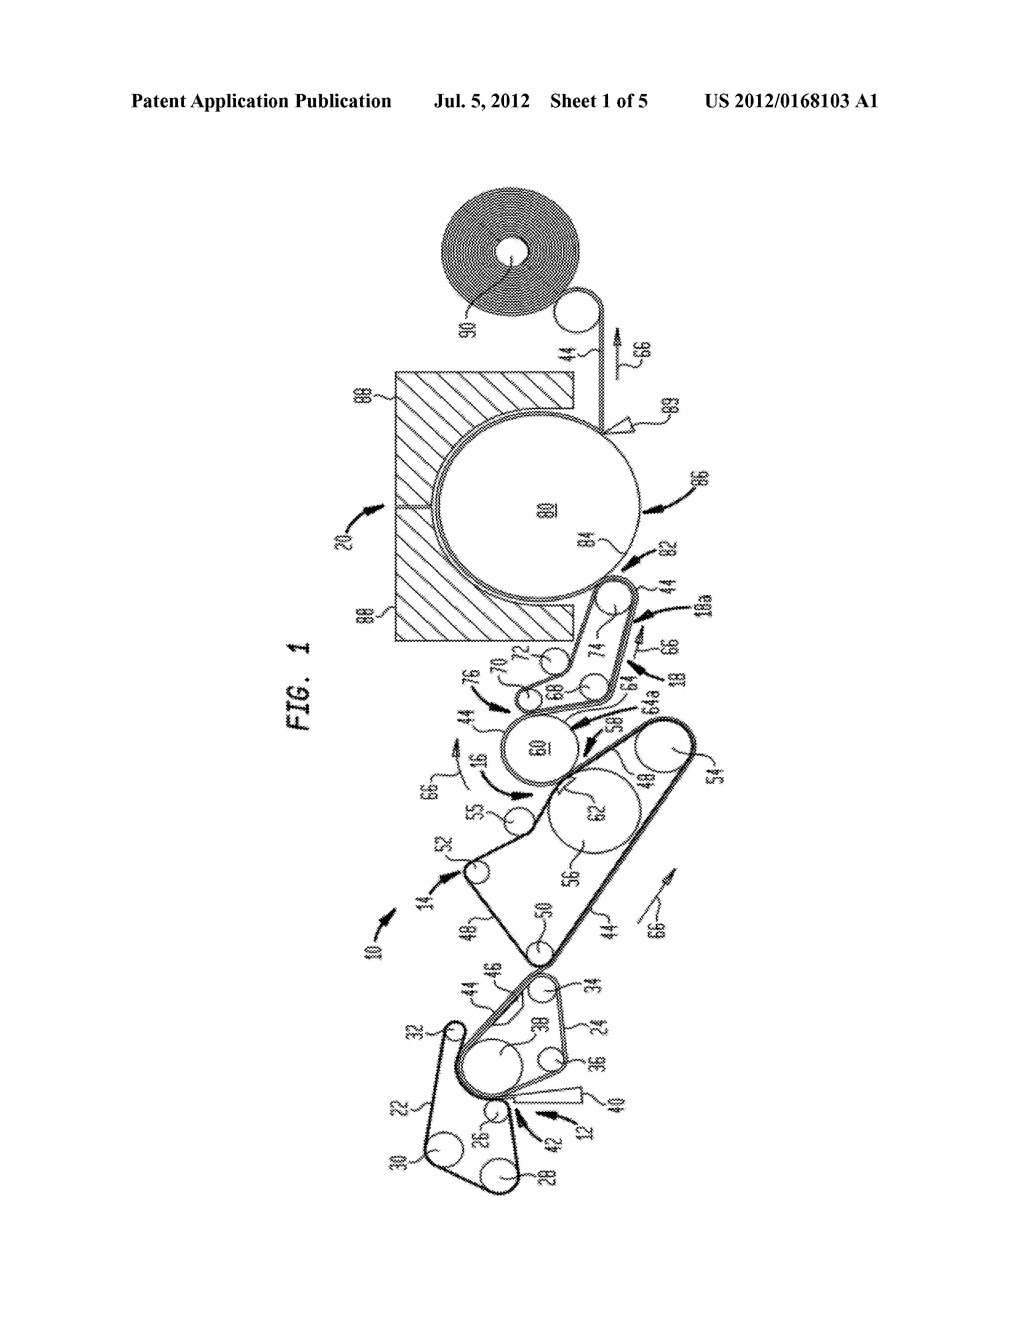 Creping Adhesive Compositions And Methods Of Using Those Compositions - diagram, schematic, and image 02